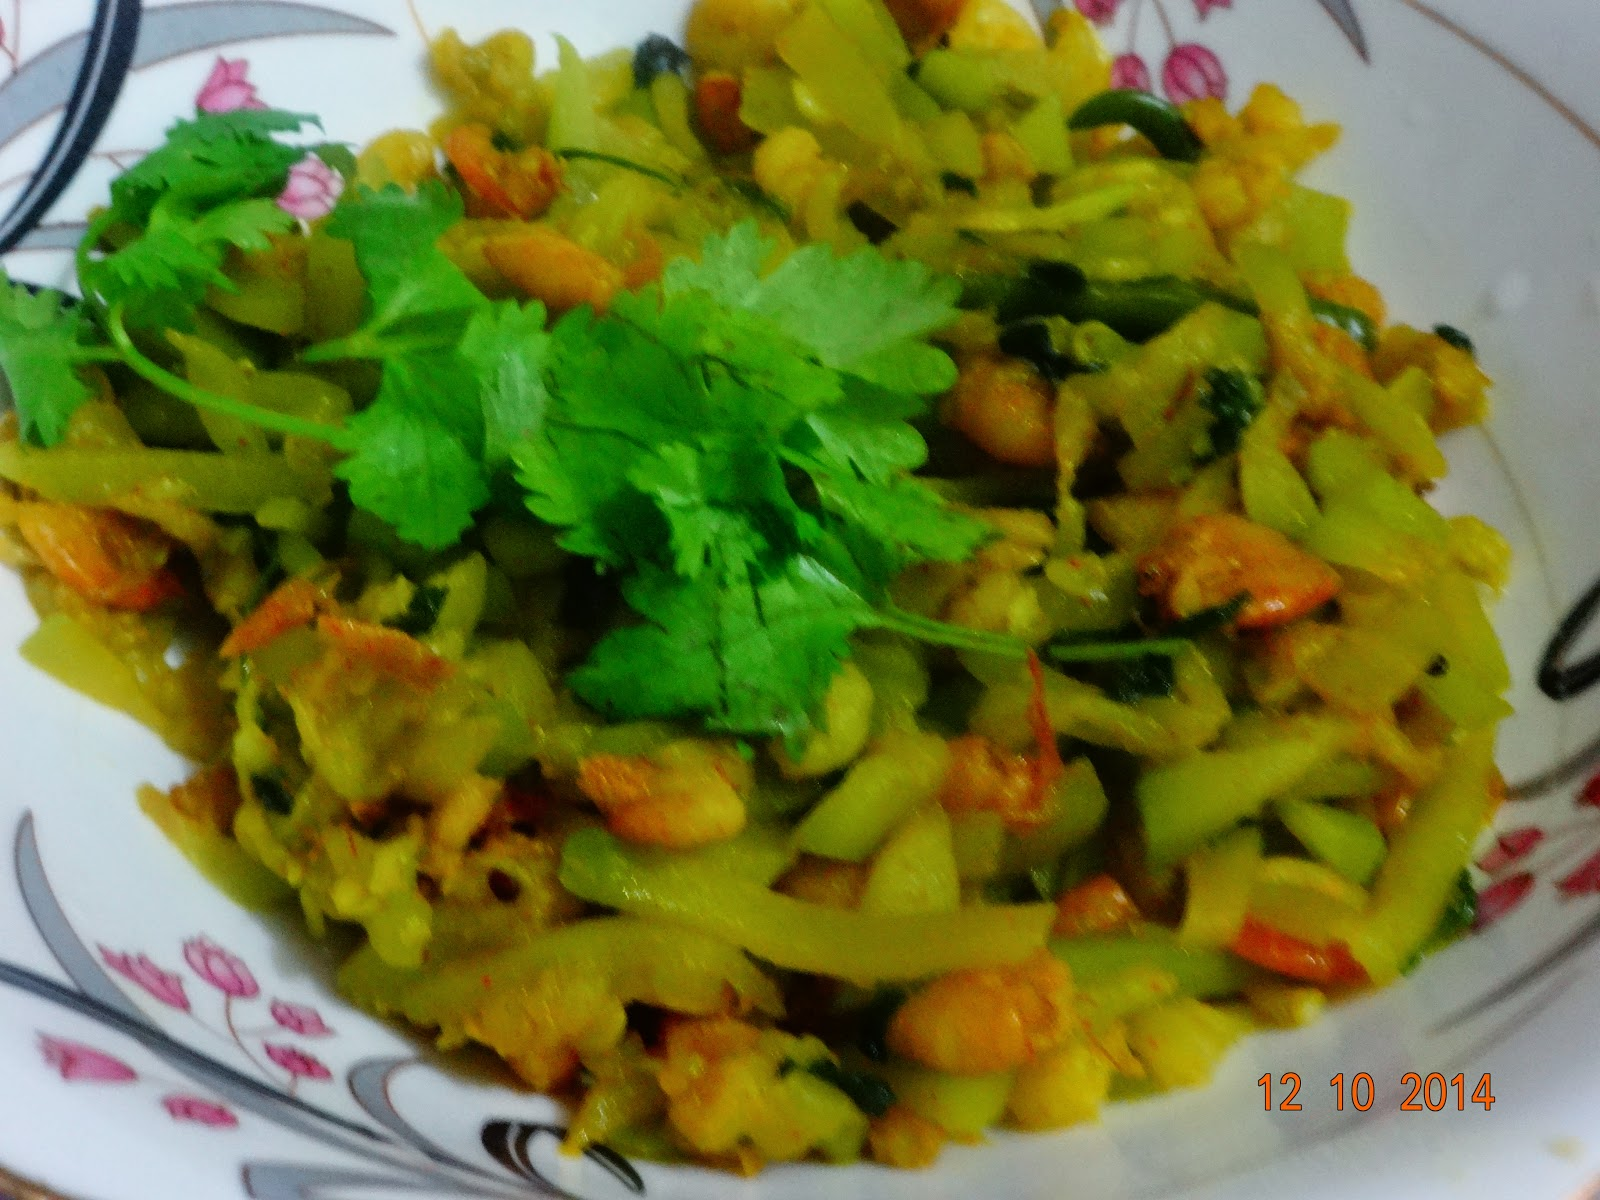 Lau chingri ( Bottle gourd with prawn)